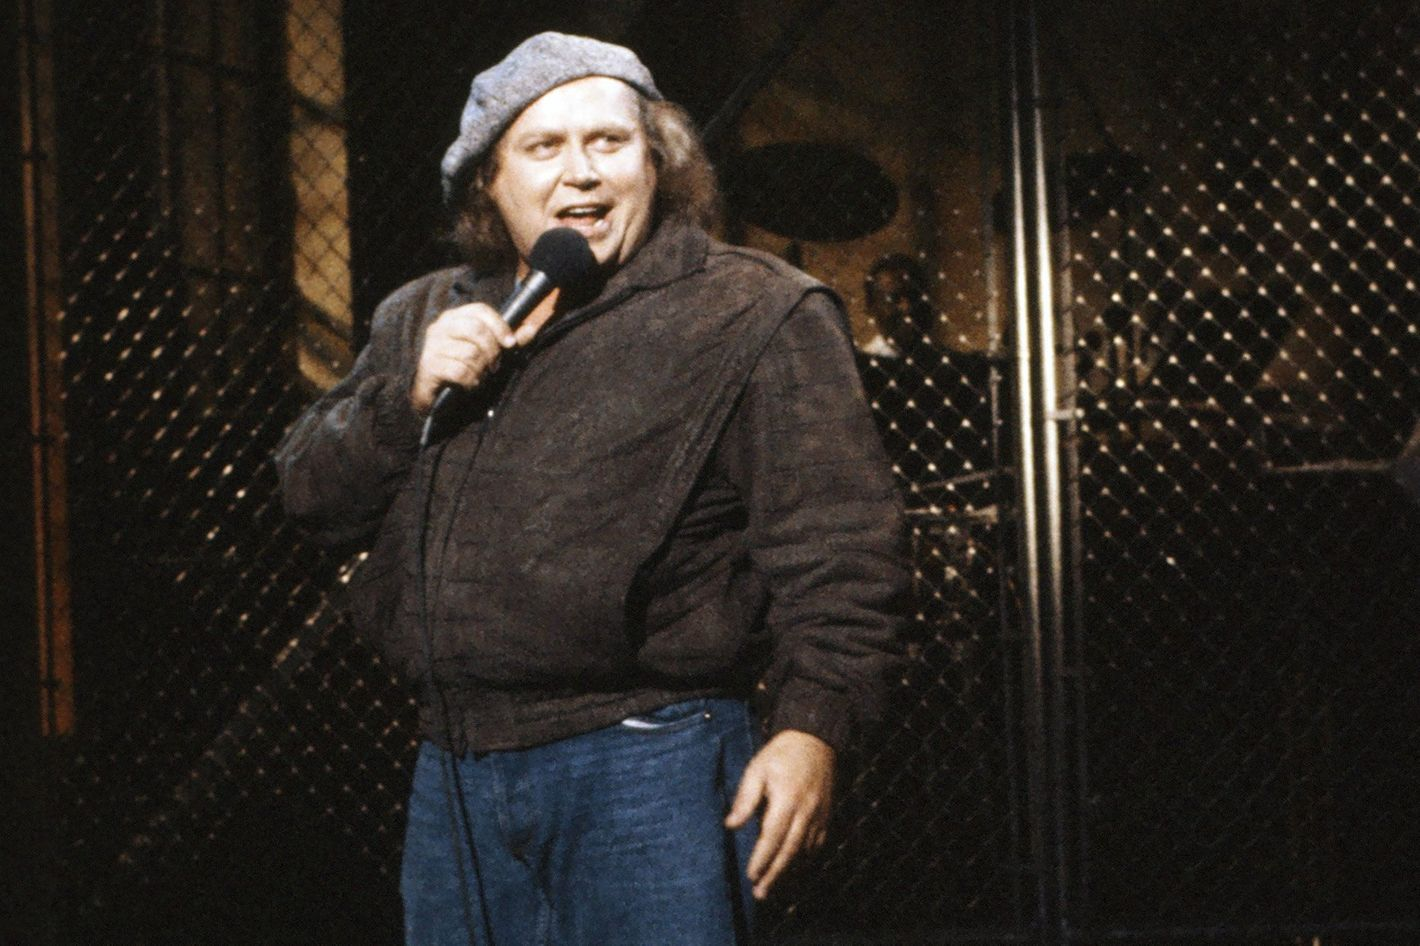 Sam kinison accident scene photos - Sam Kinison Accident Scene Photos 43